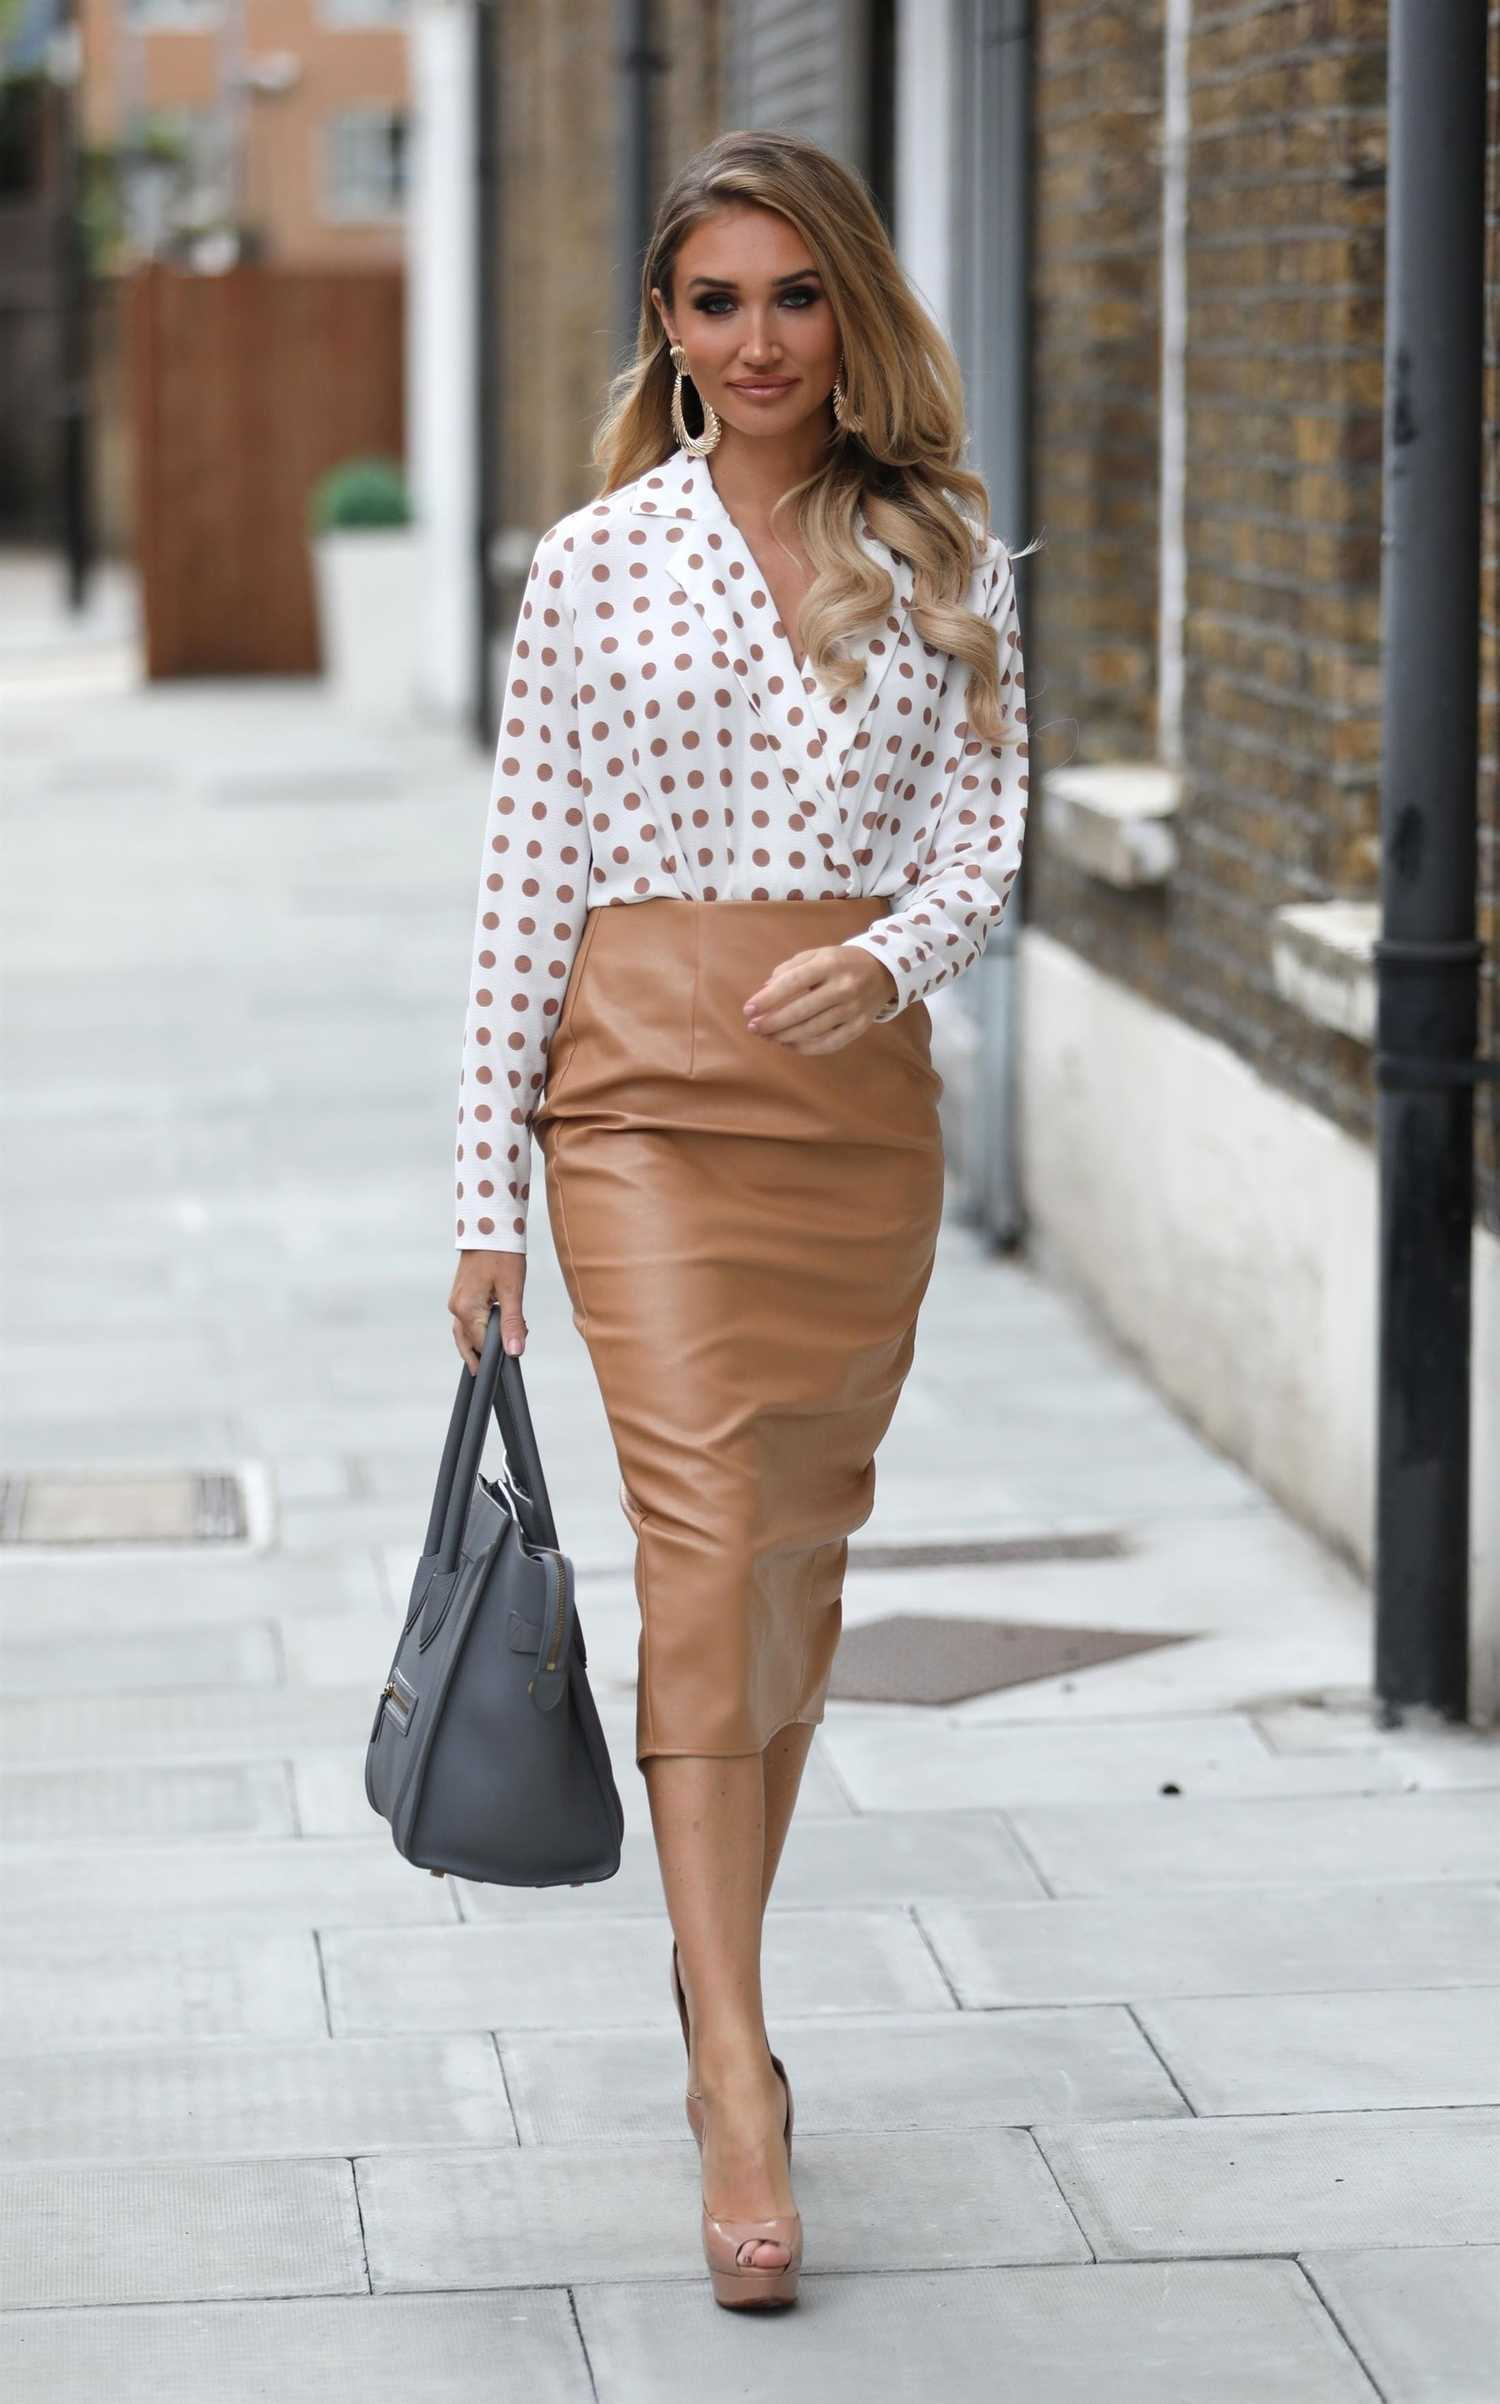 Megan Mckenna Arrives At Studio Mouthy In London Celeb Donut